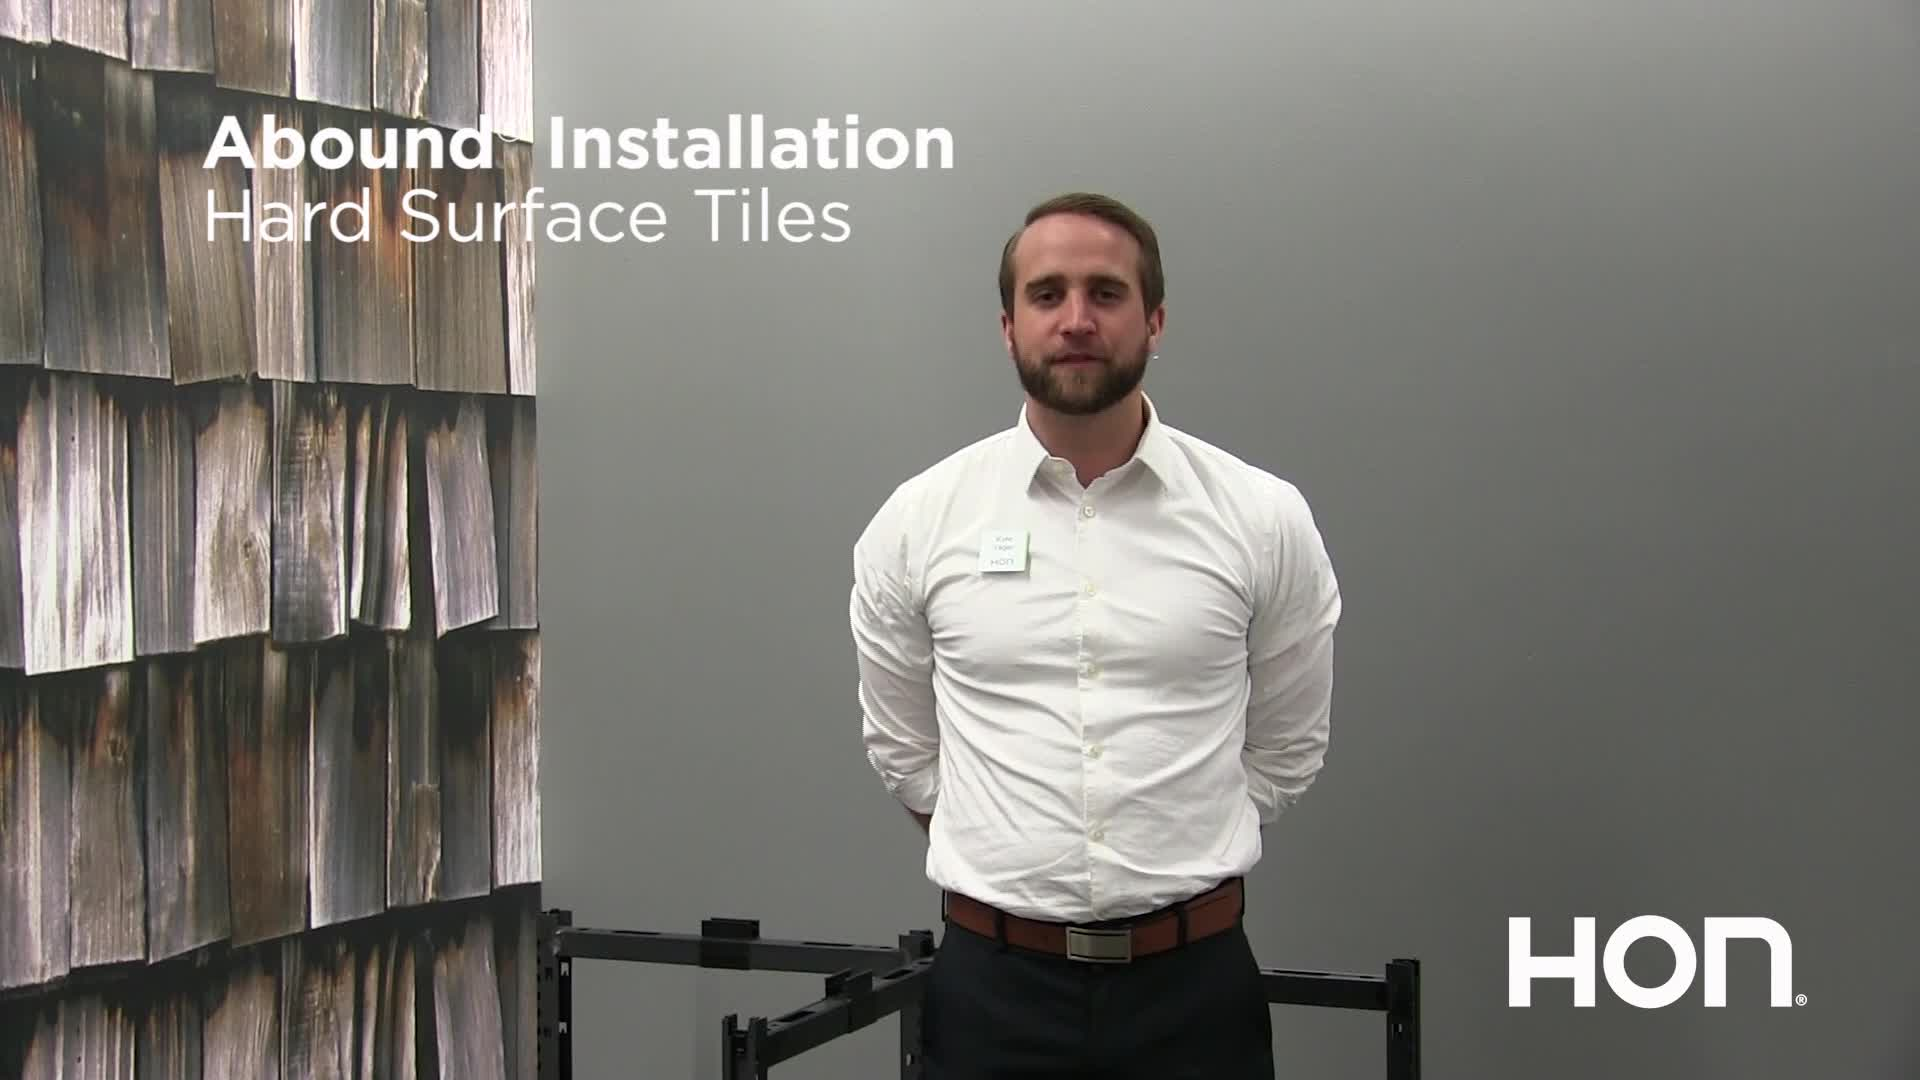 Abound Tips and Tricks - Installation Hard Surface Tiles video link